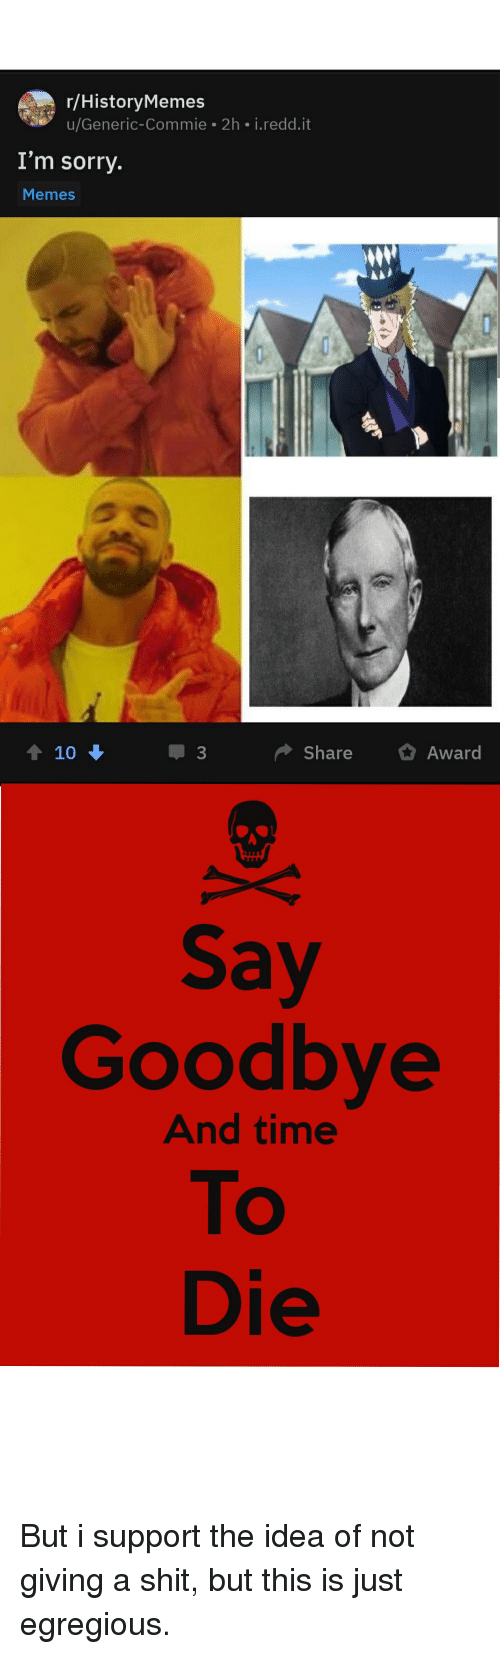 Sorry Memes: r/HistoryMemes  u/Generic-Commie 2h i.redd.it  I'm sorry.  Memes  10  3  Share Award  Say  Goodbye  To  Die  And time